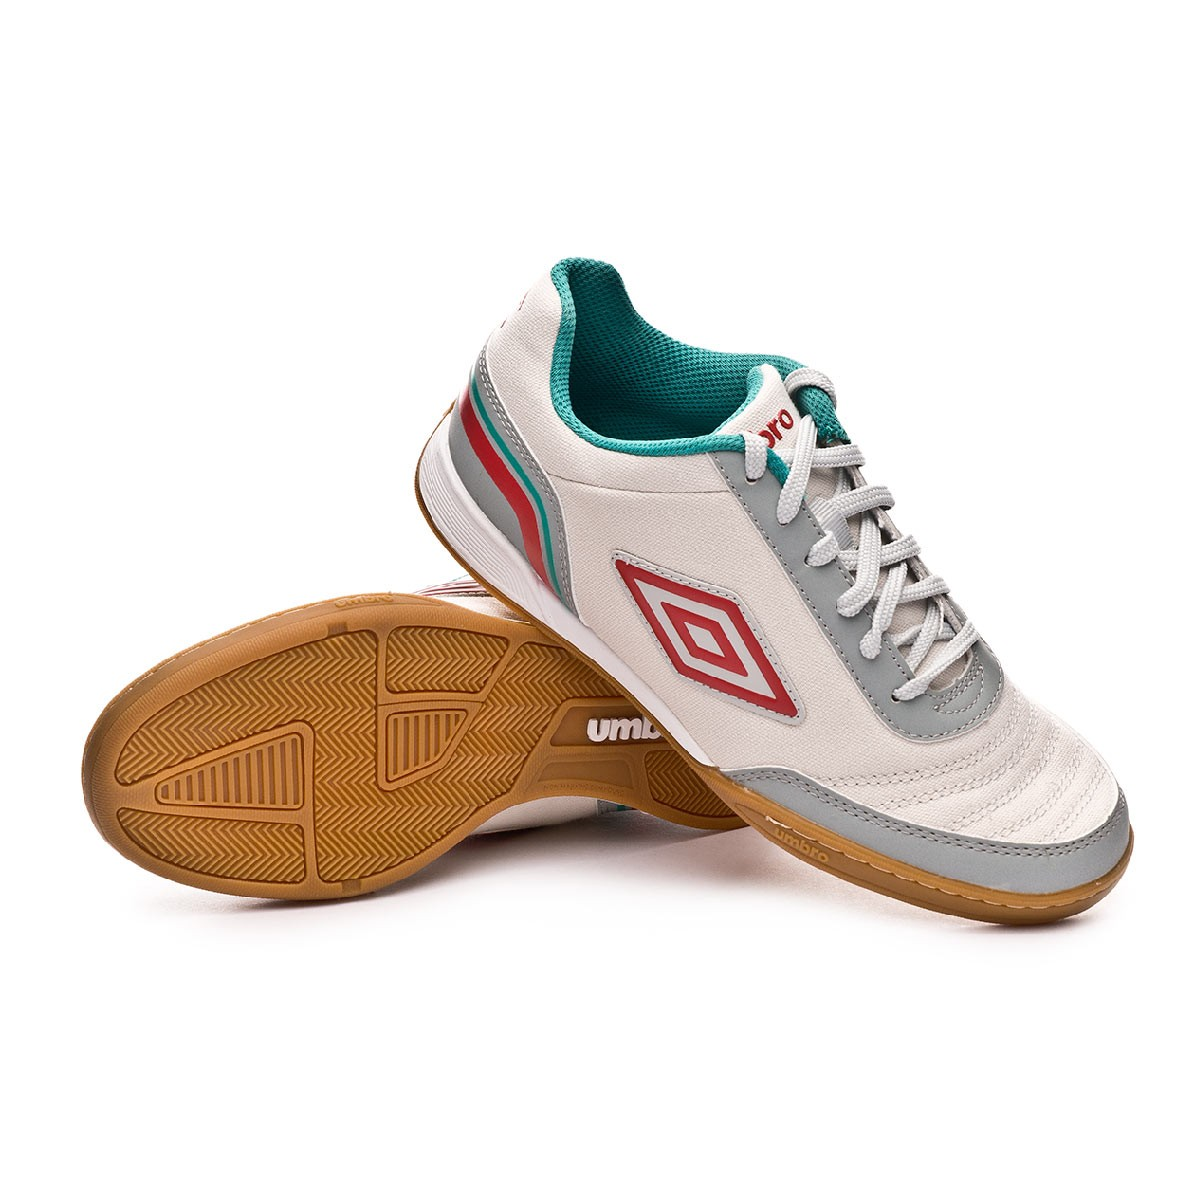 umbro tennis shoes